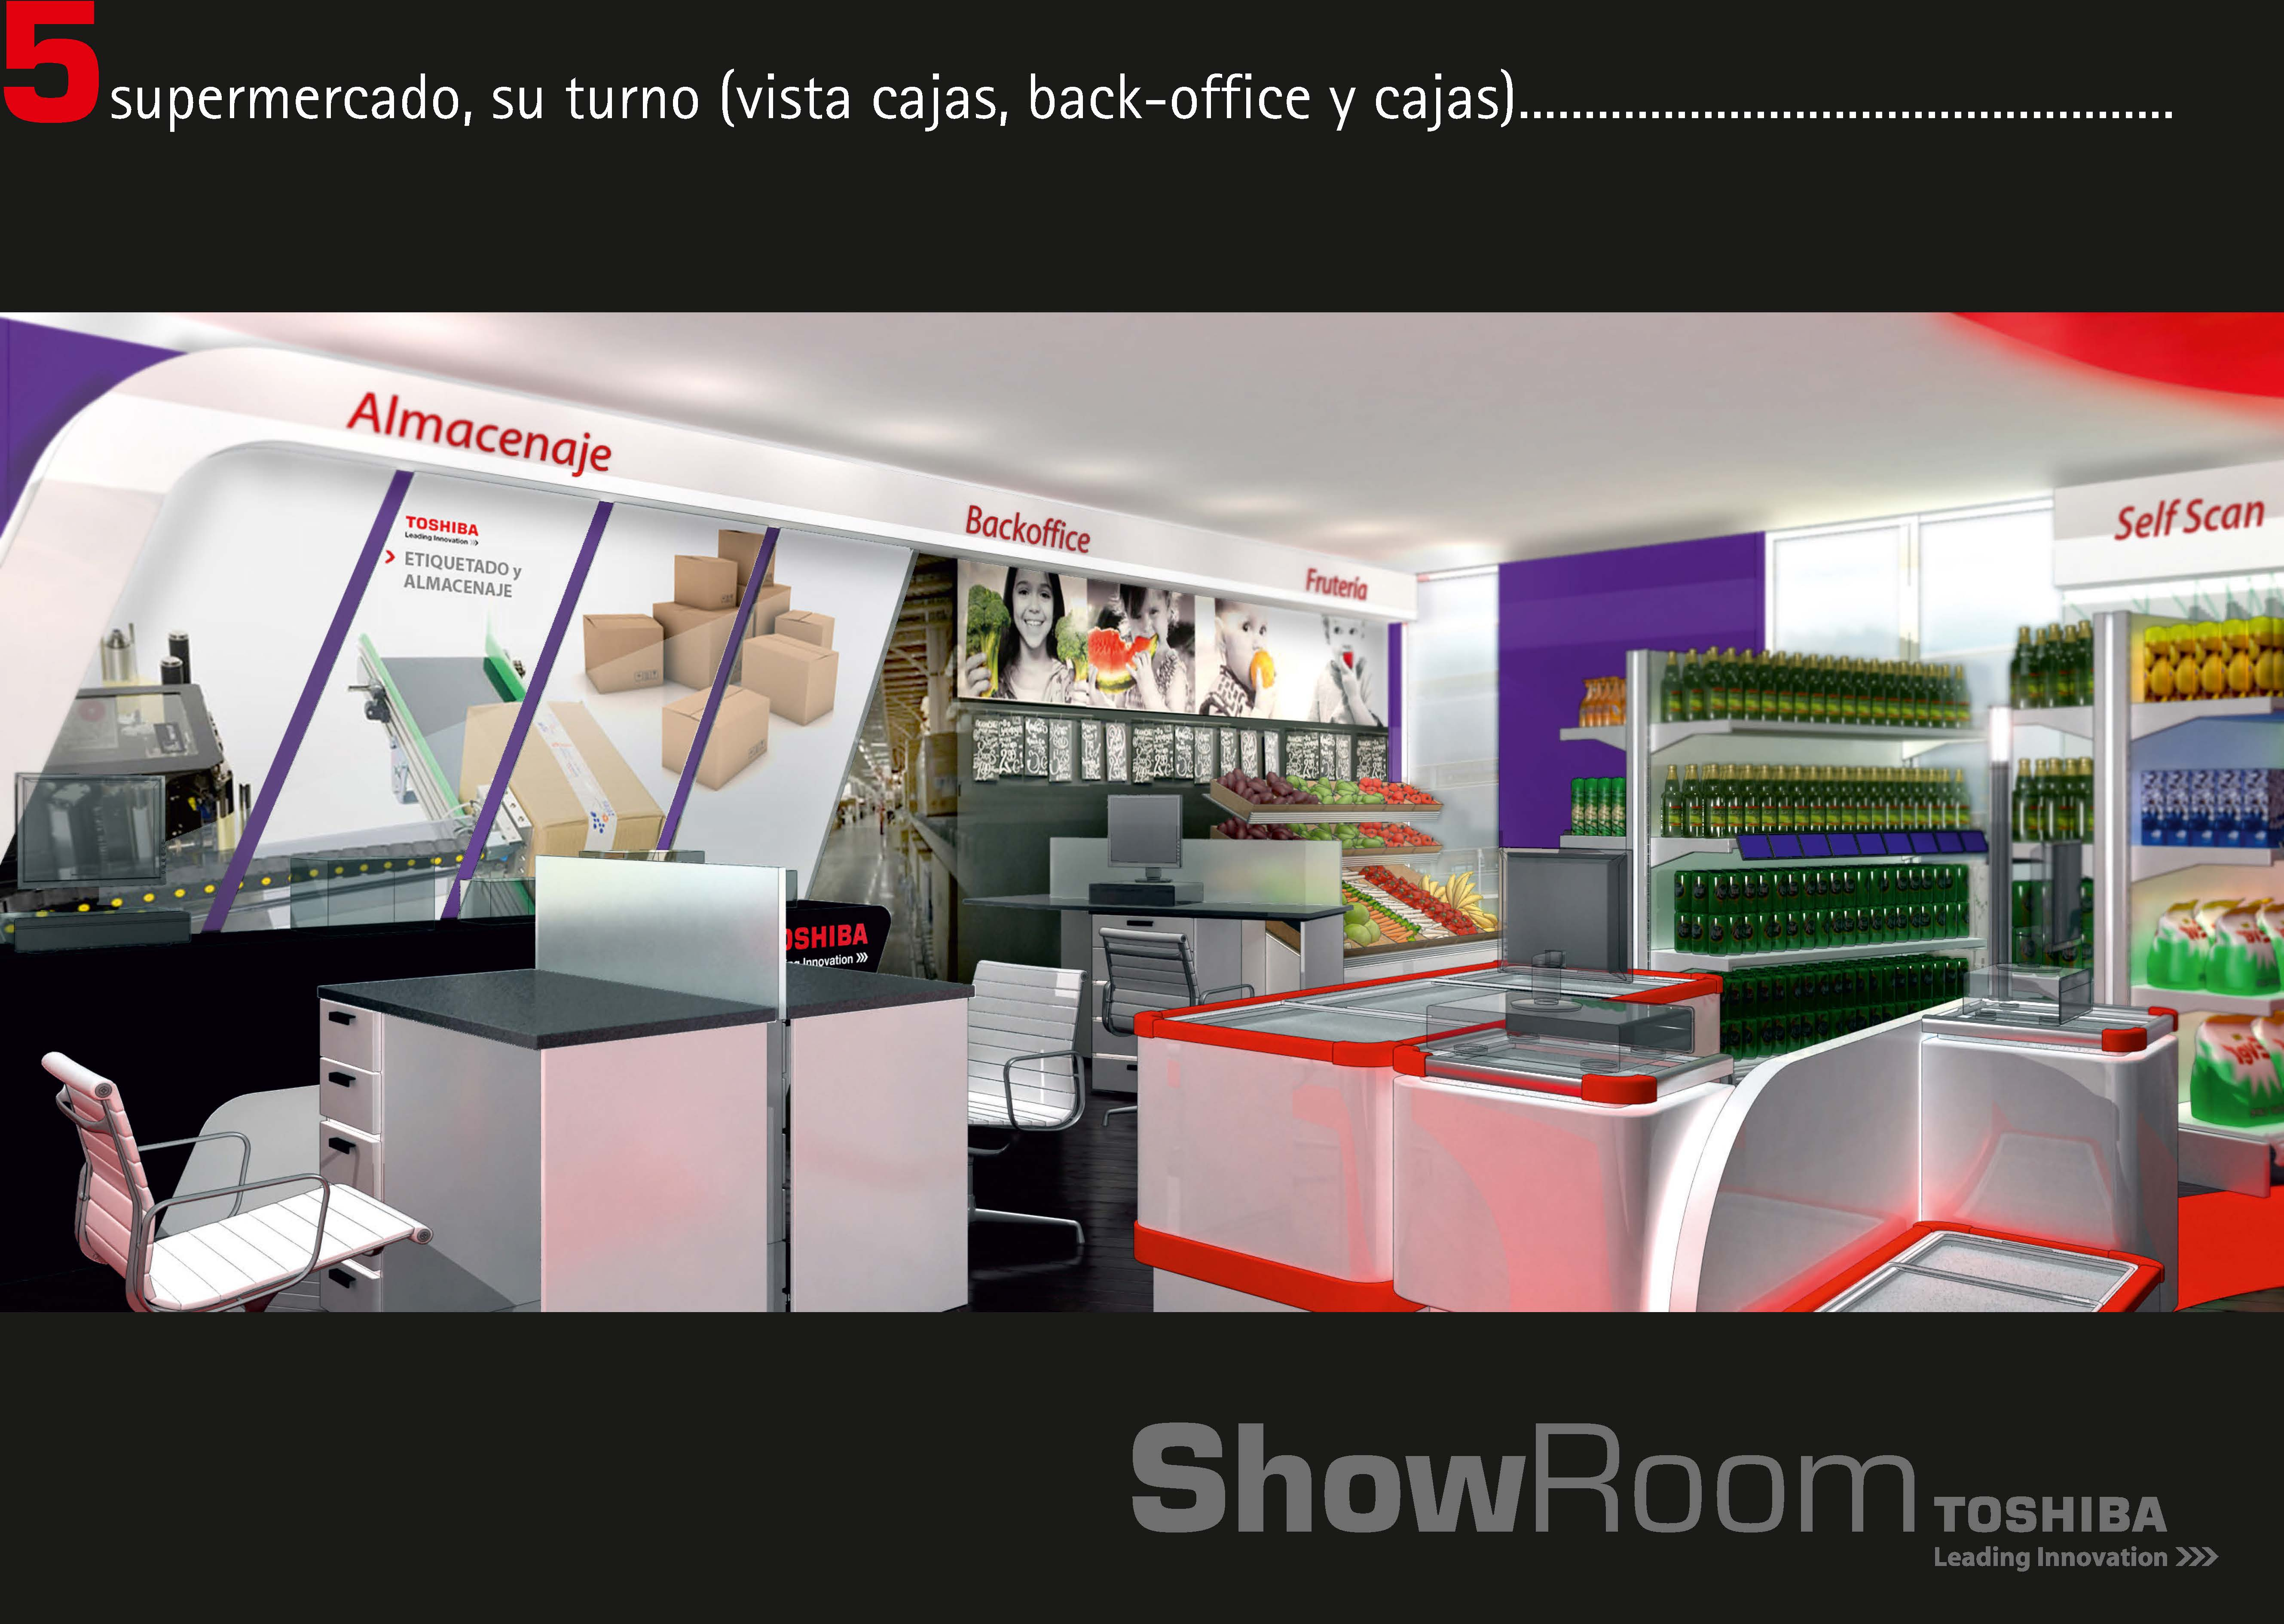 Expo TOSHIBA ShowRoom Madrid 3D (10).jpg